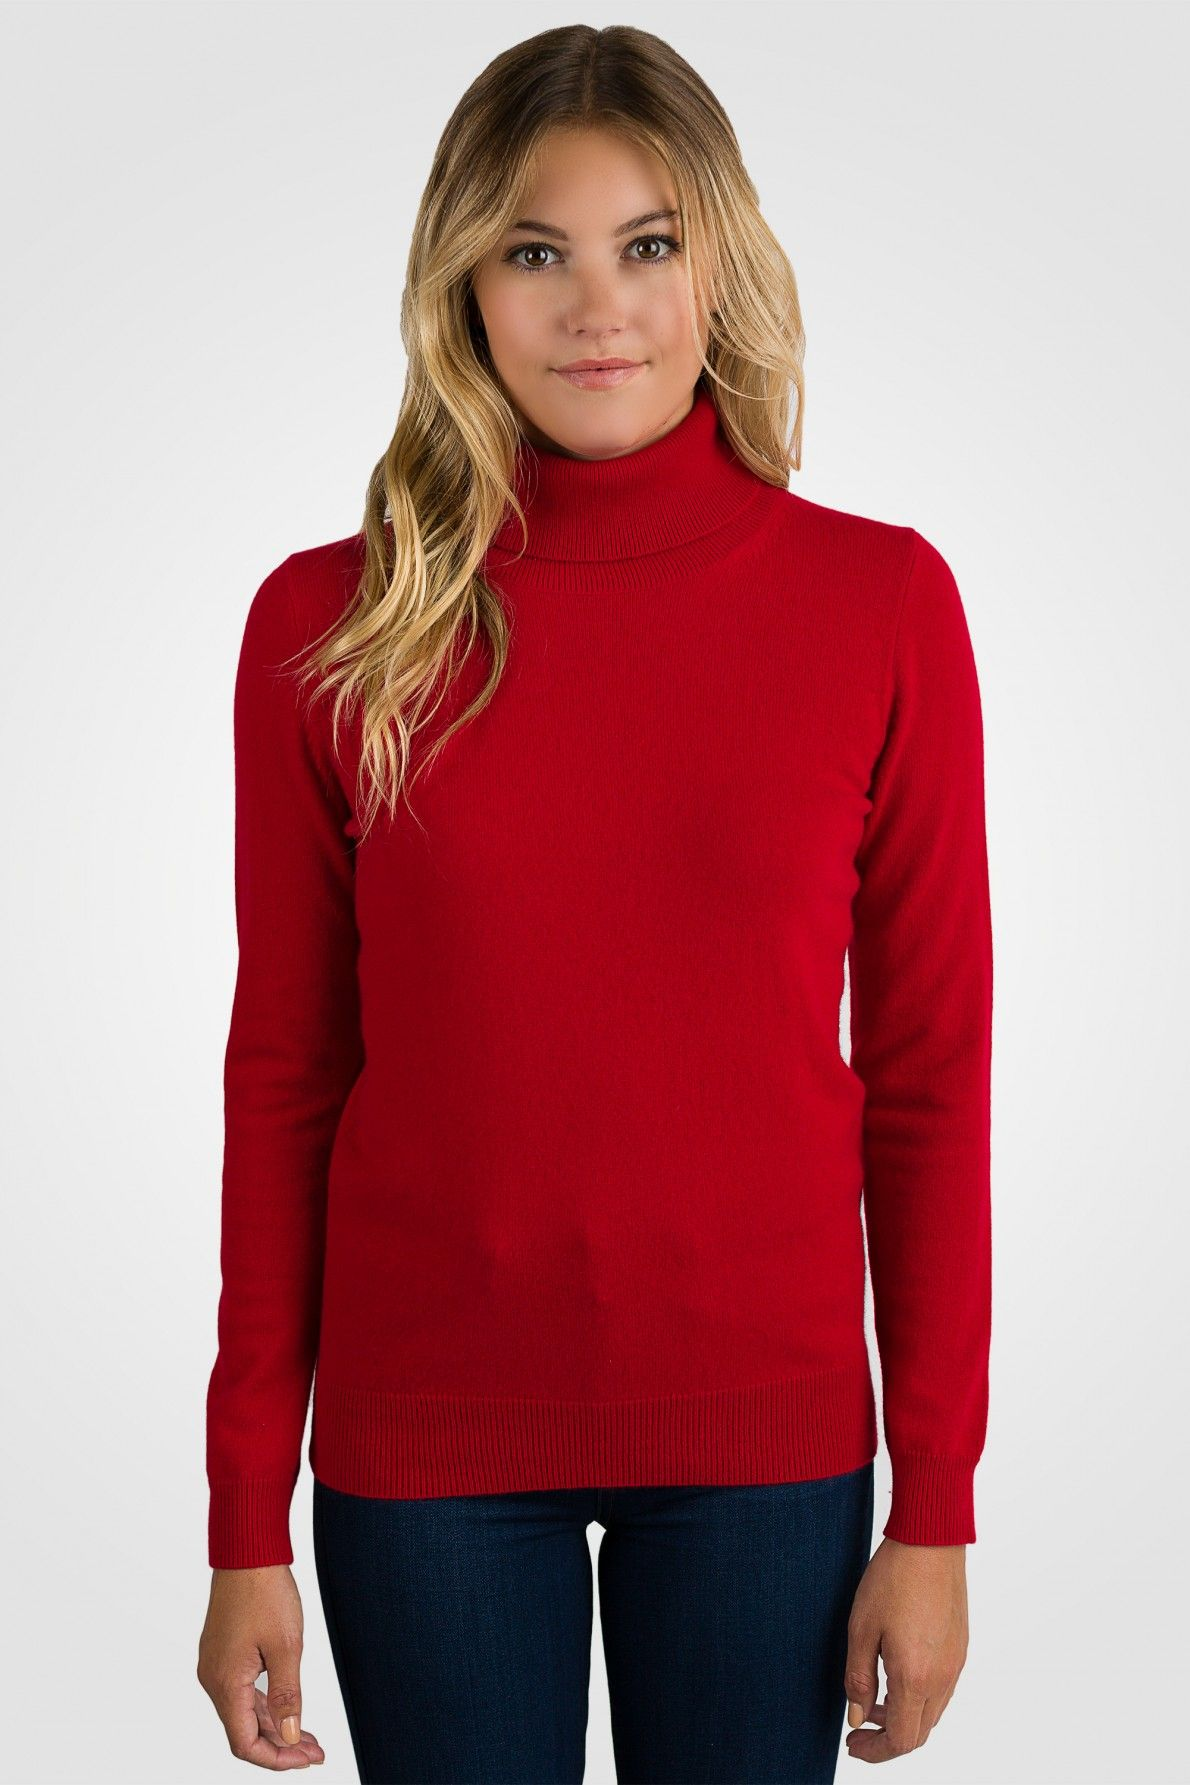 Red Cashmere Long Sleeve Turtleneck Sweater [ JCashmere.com ] | J ...